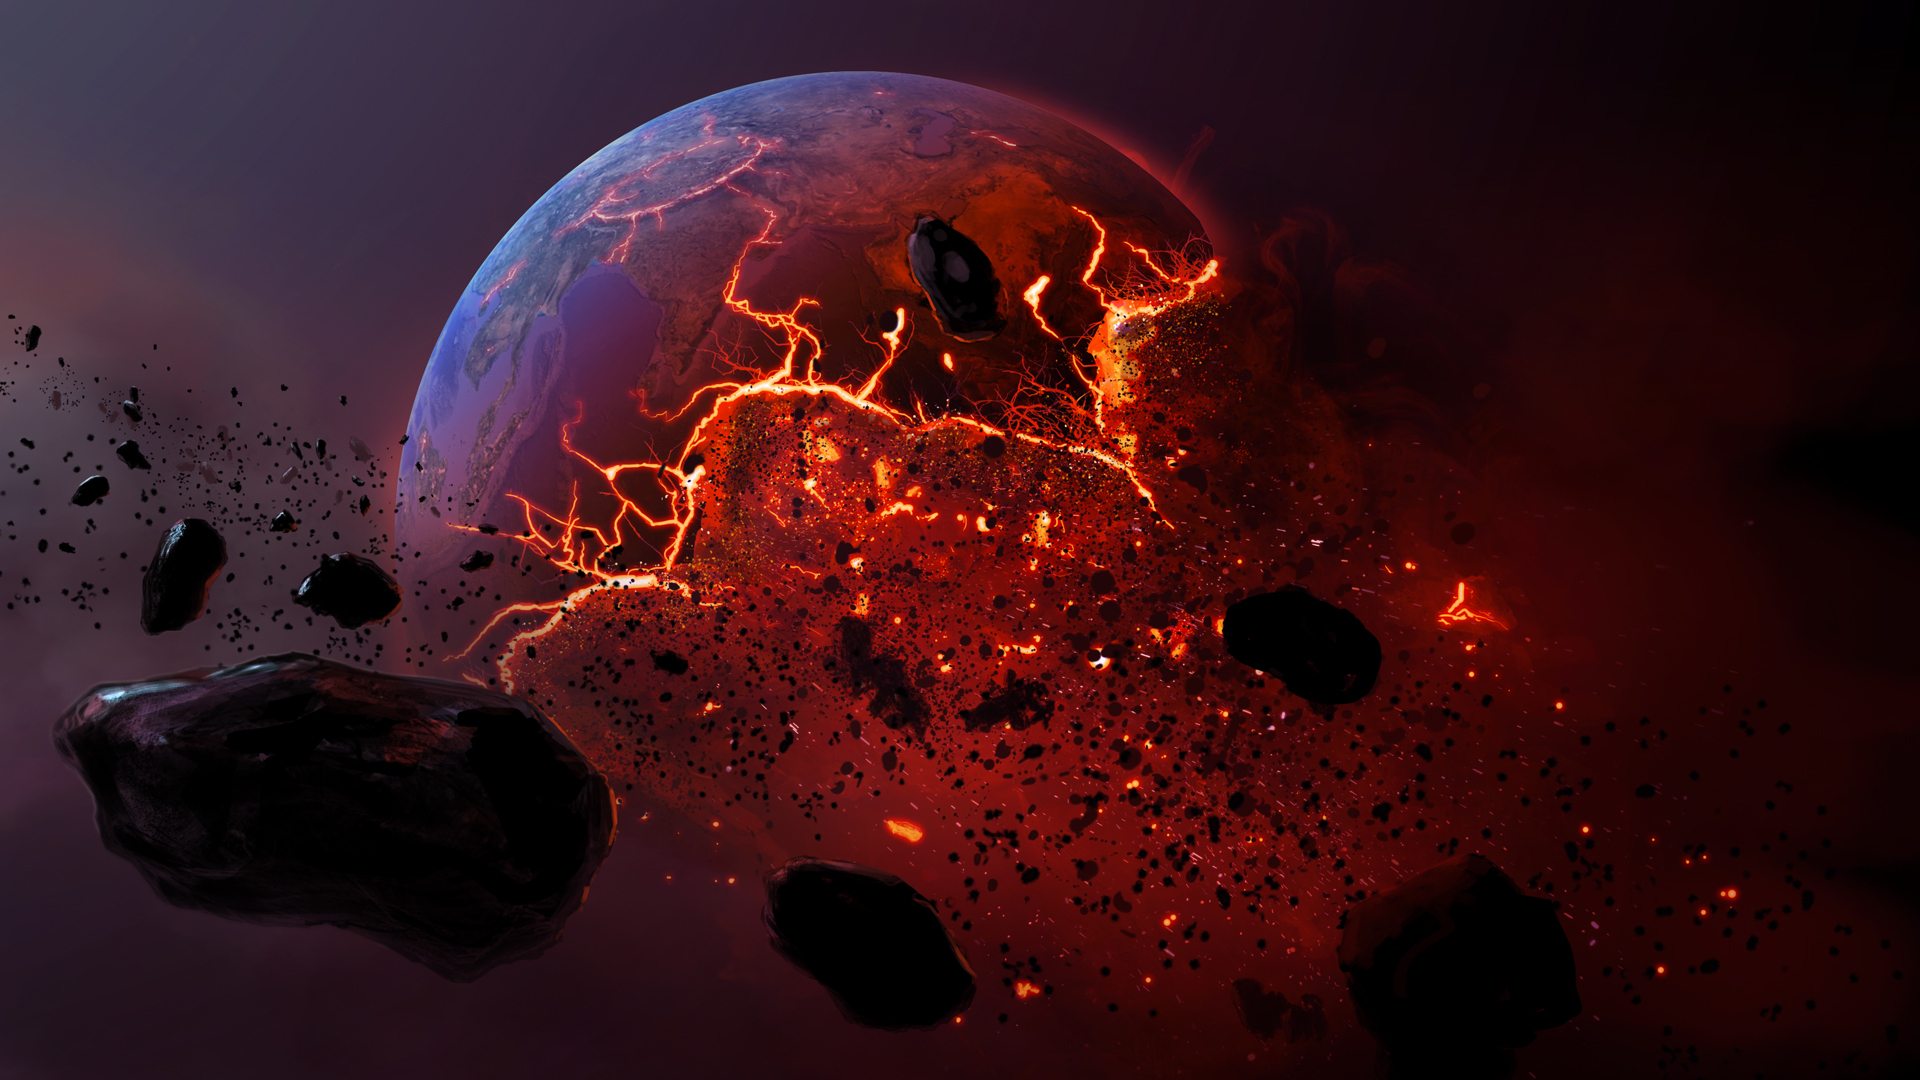 Meteor burning earth planet apocalyptic h wallpaper ...